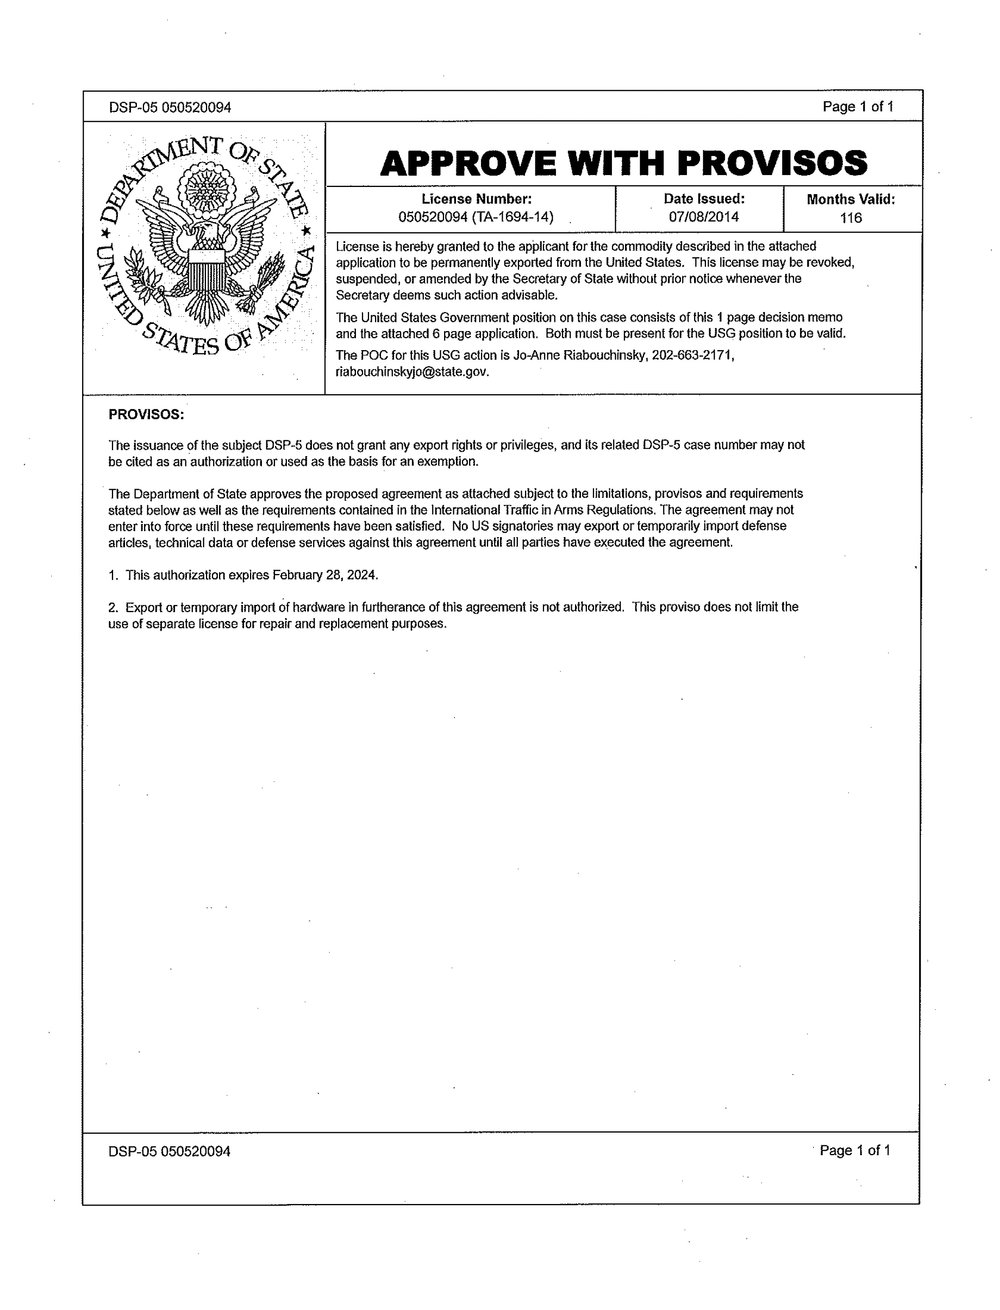 Approval of DSP-5 license by the U.S. Department of State, 2014